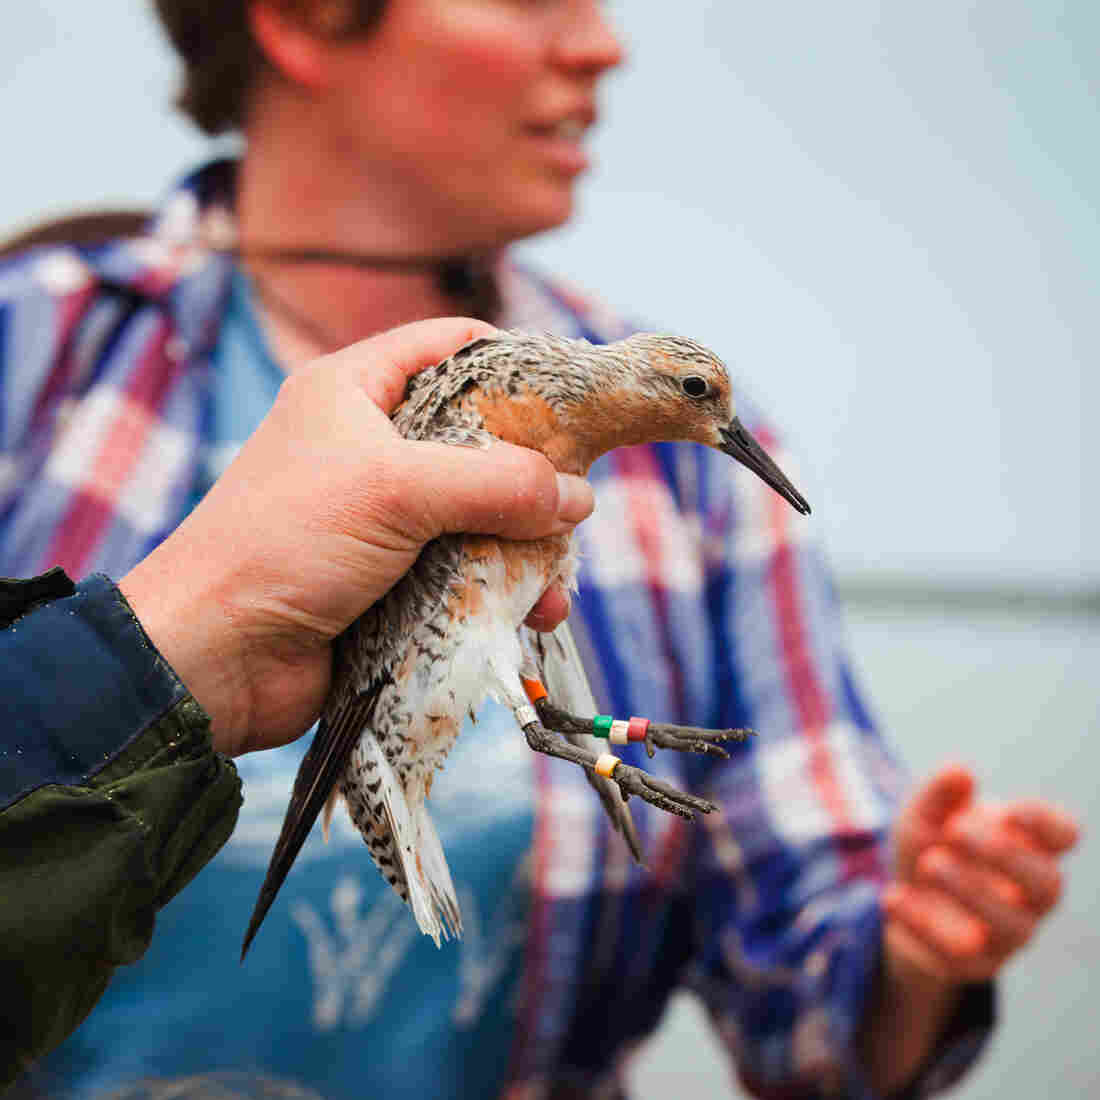 Shifts In Habitat May Threaten Ruddy Shorebird's Survival